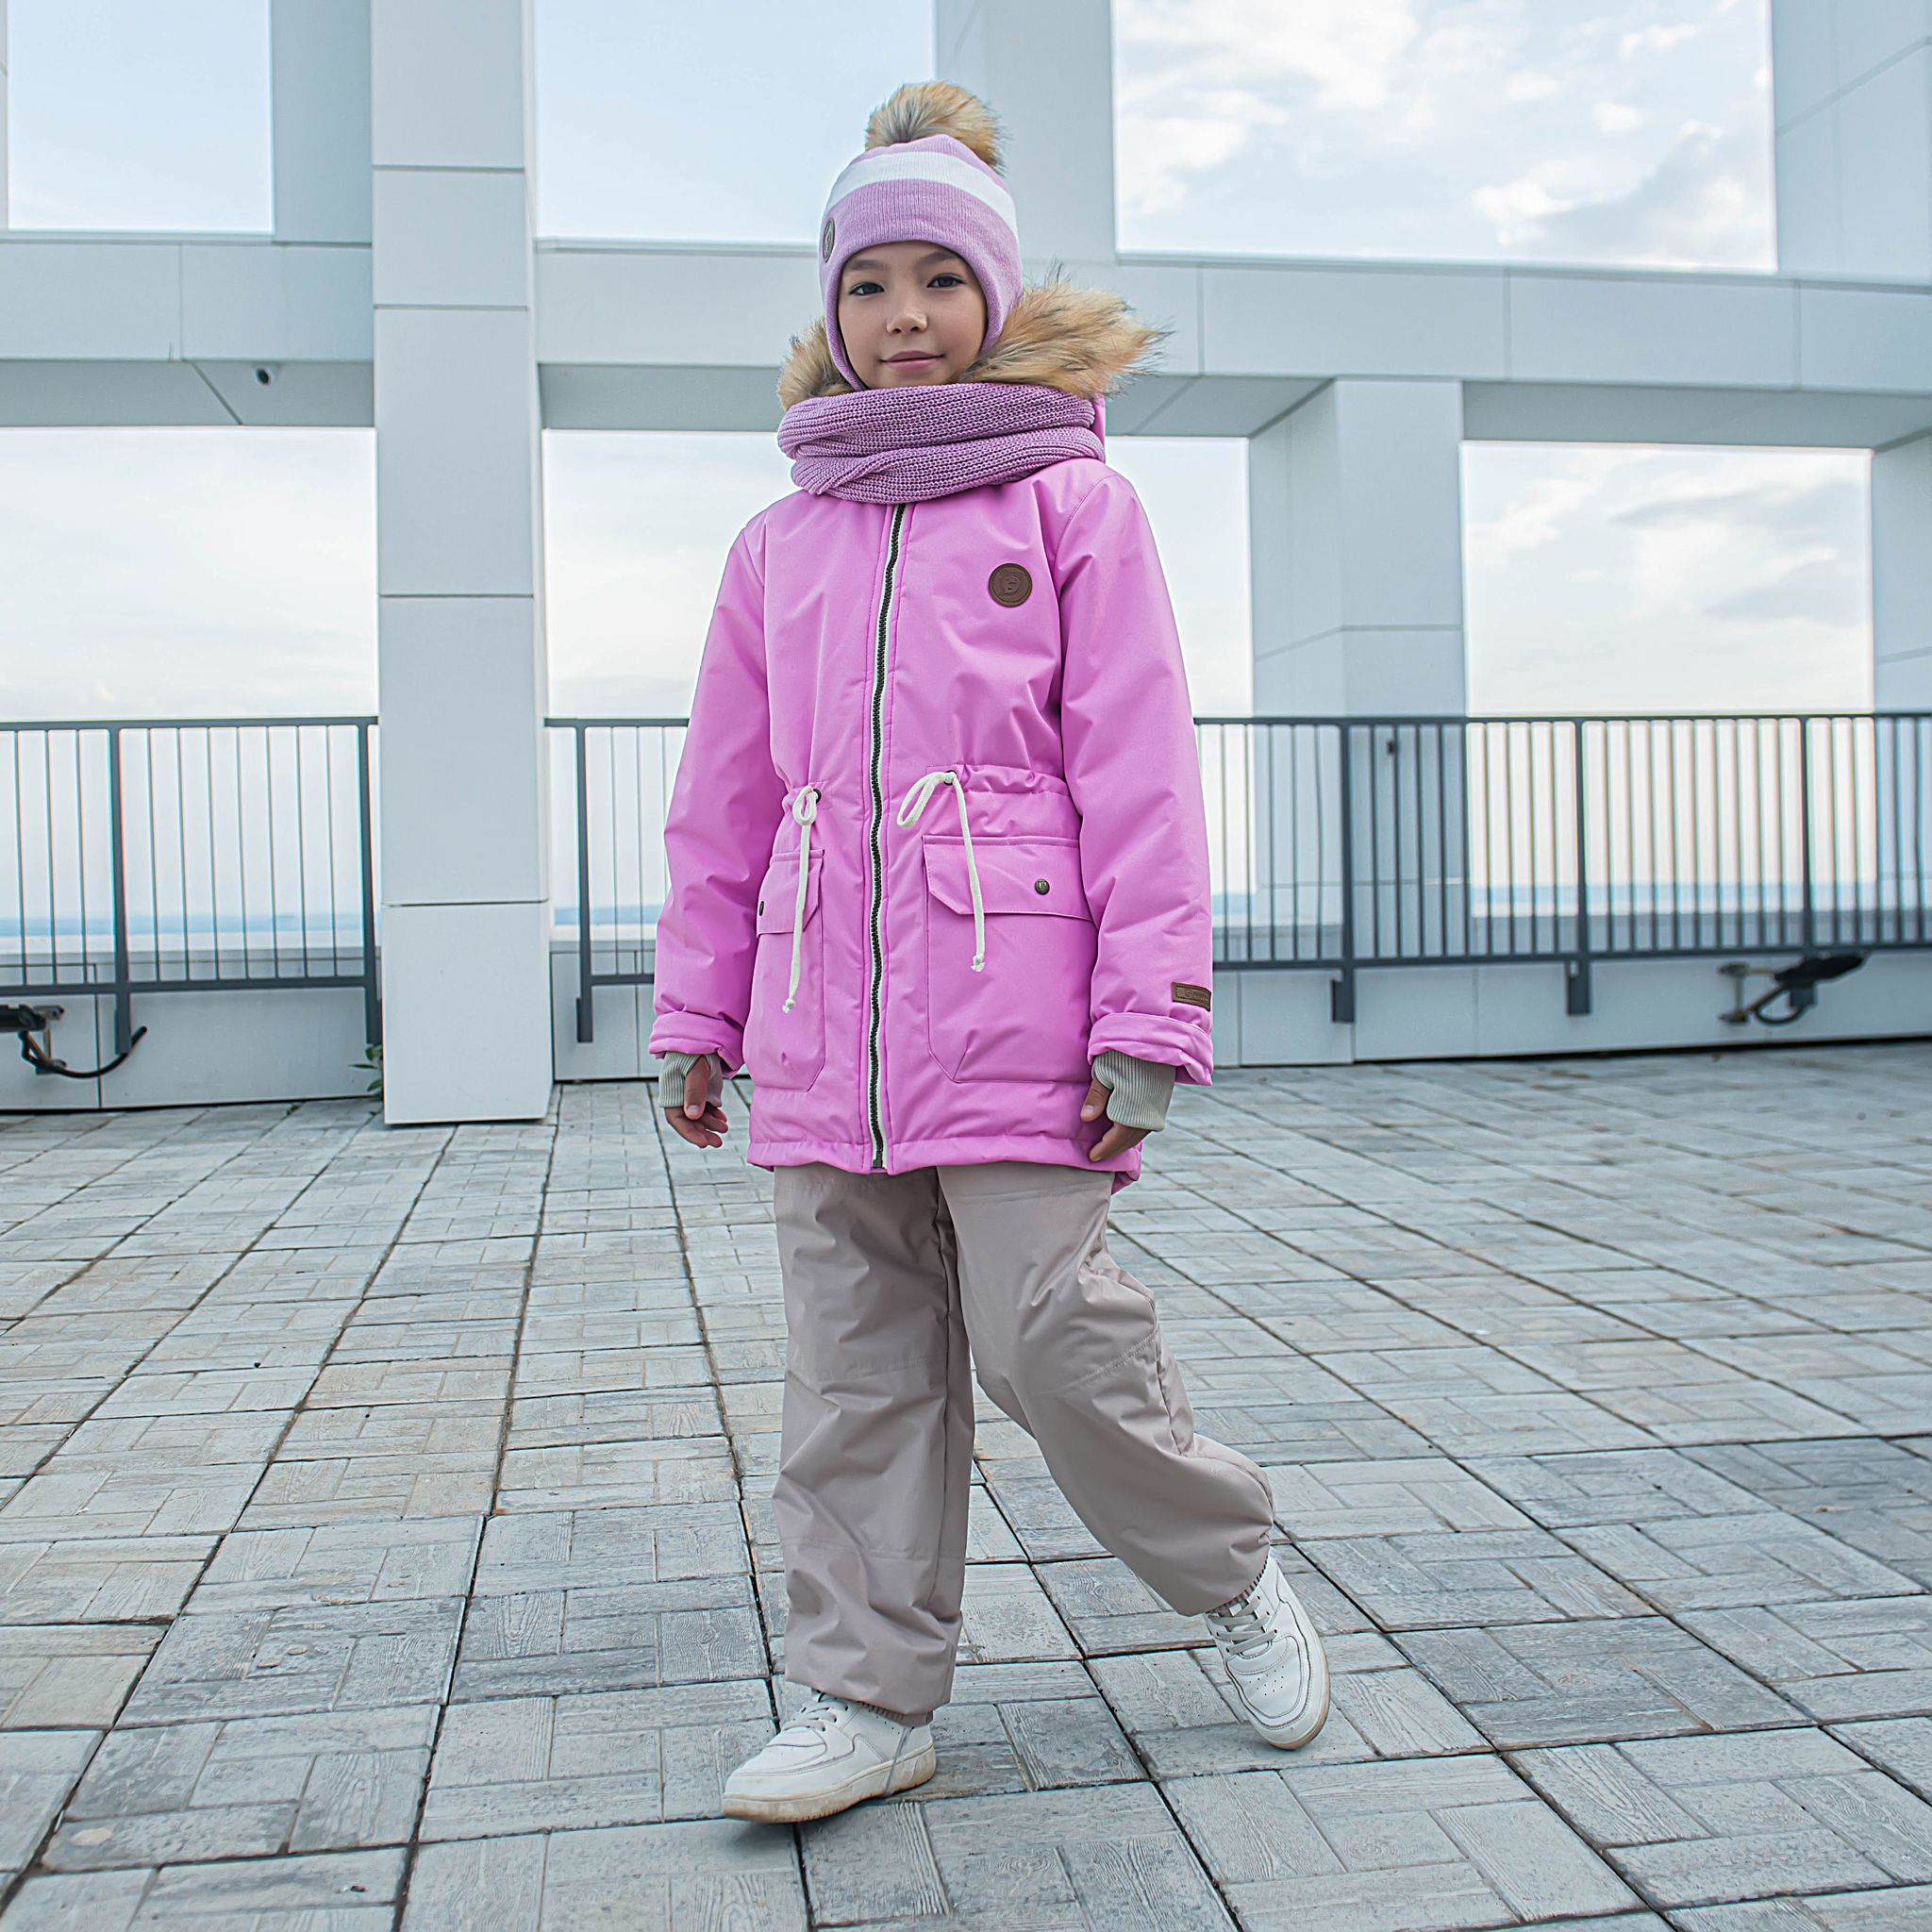 Winter membrane parka with fur for teens - Cherry Blossom